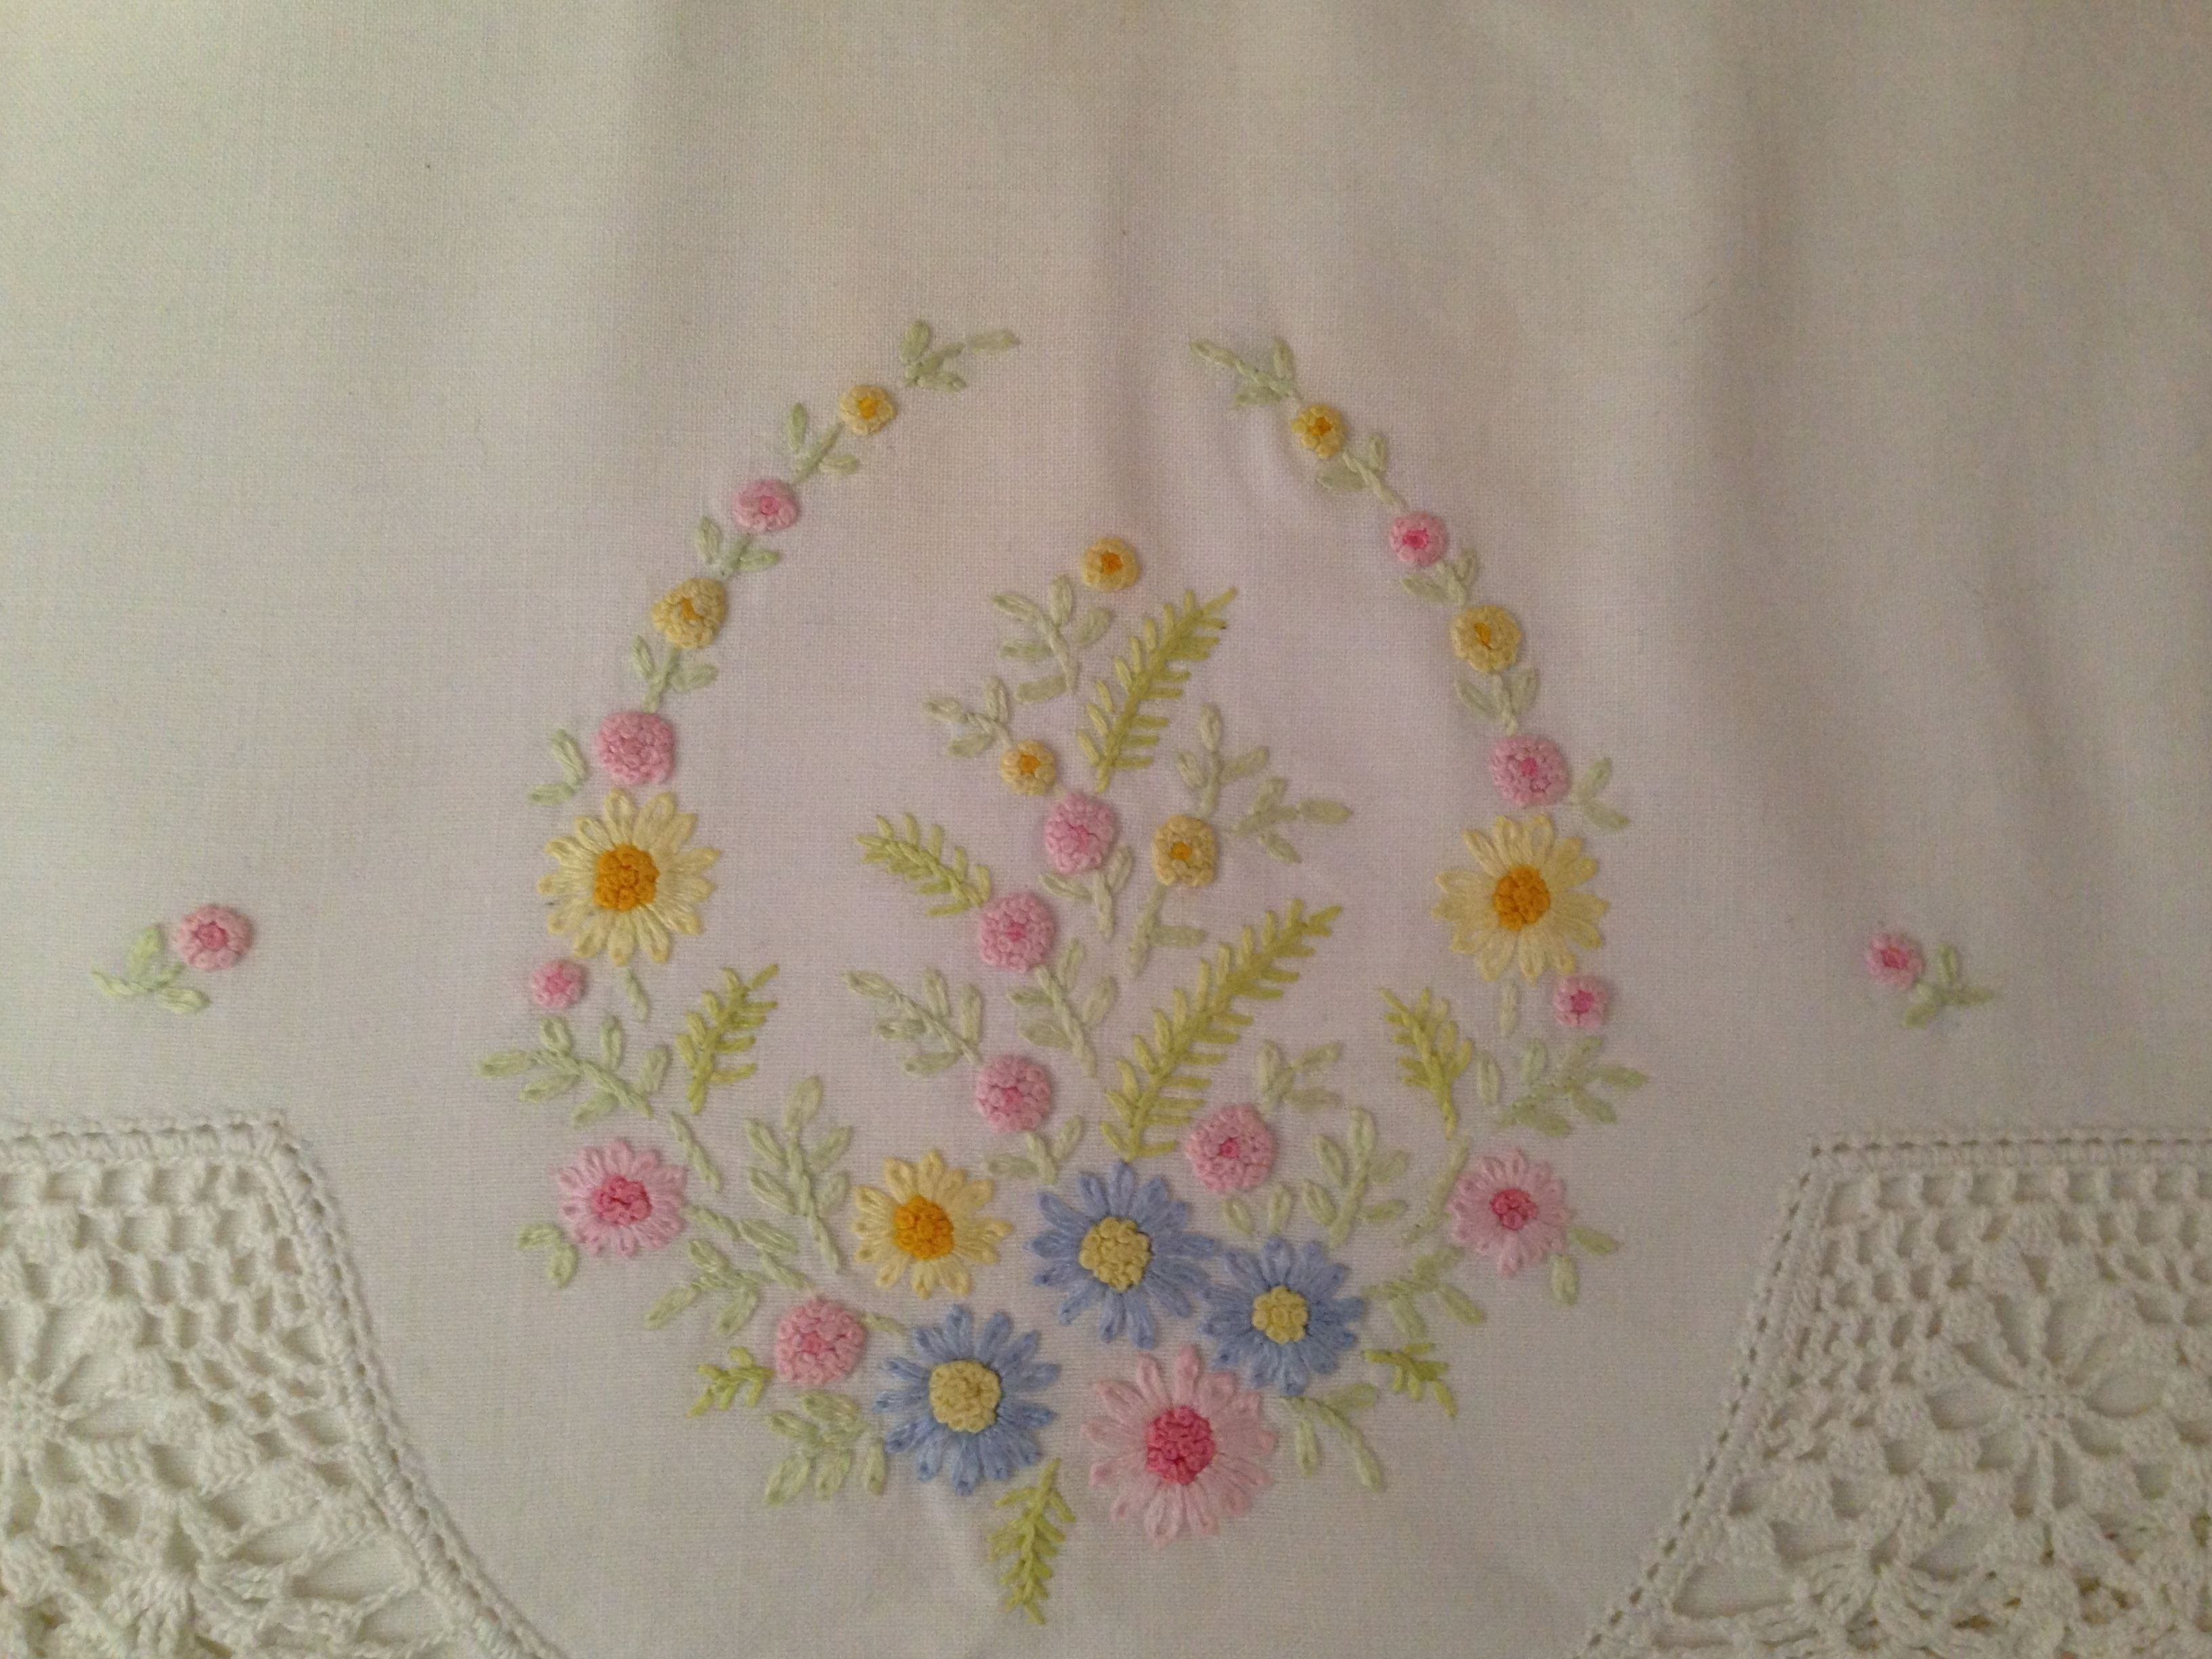 Pillowcase Edging Crocheted Embroidery By My Grandma Love The